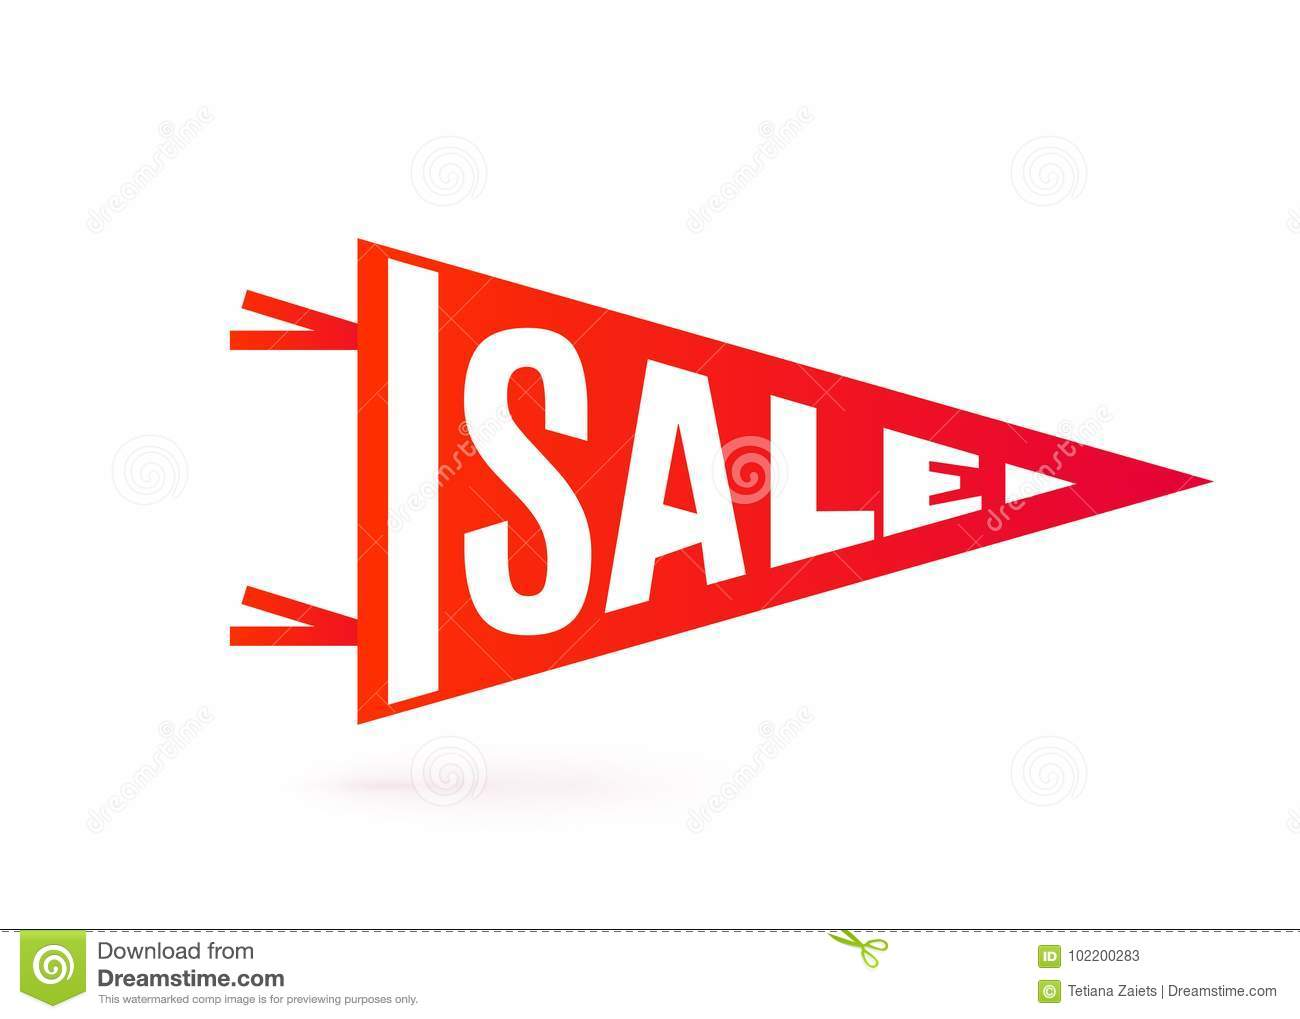 Sale tag design. Pennant flag typography motion concept